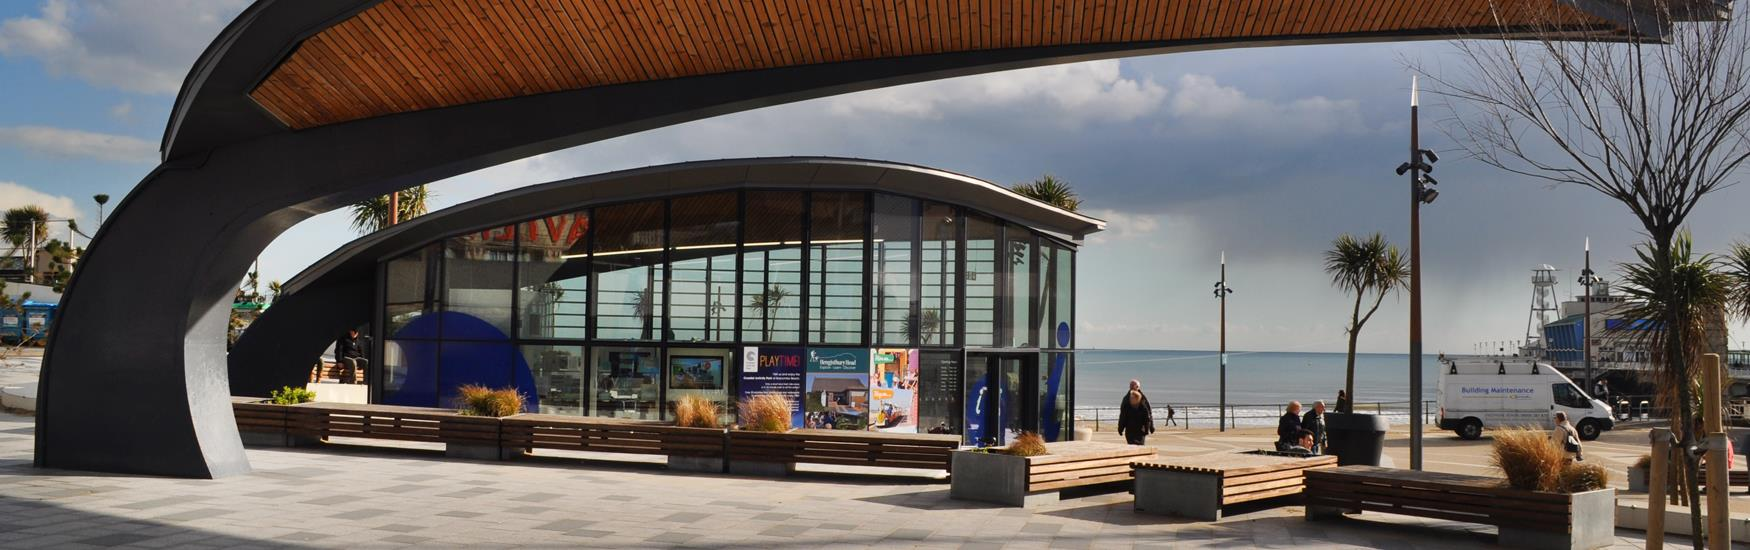 View of Pier Approach area with glass building and the pier and the sea in the background on a summer's day